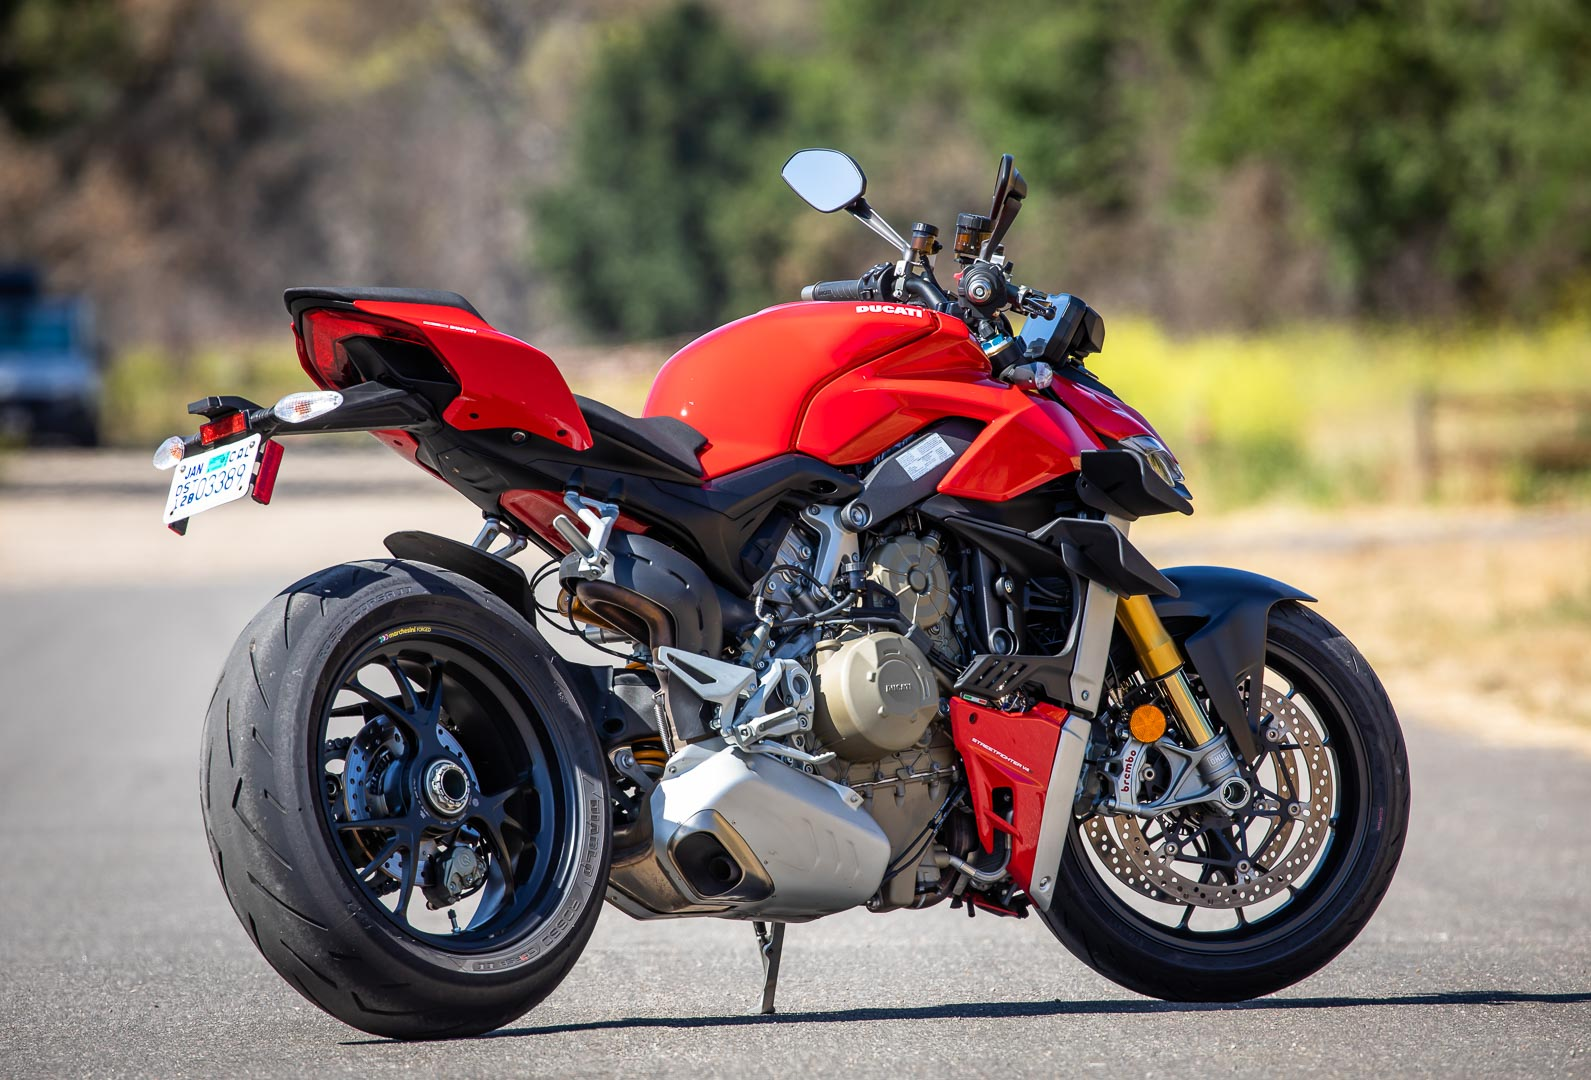 Ducati-Streetfighter-V4-S-2020 ultimatemotorcycling com Review-naked-upgright-sport-motorcycle-8